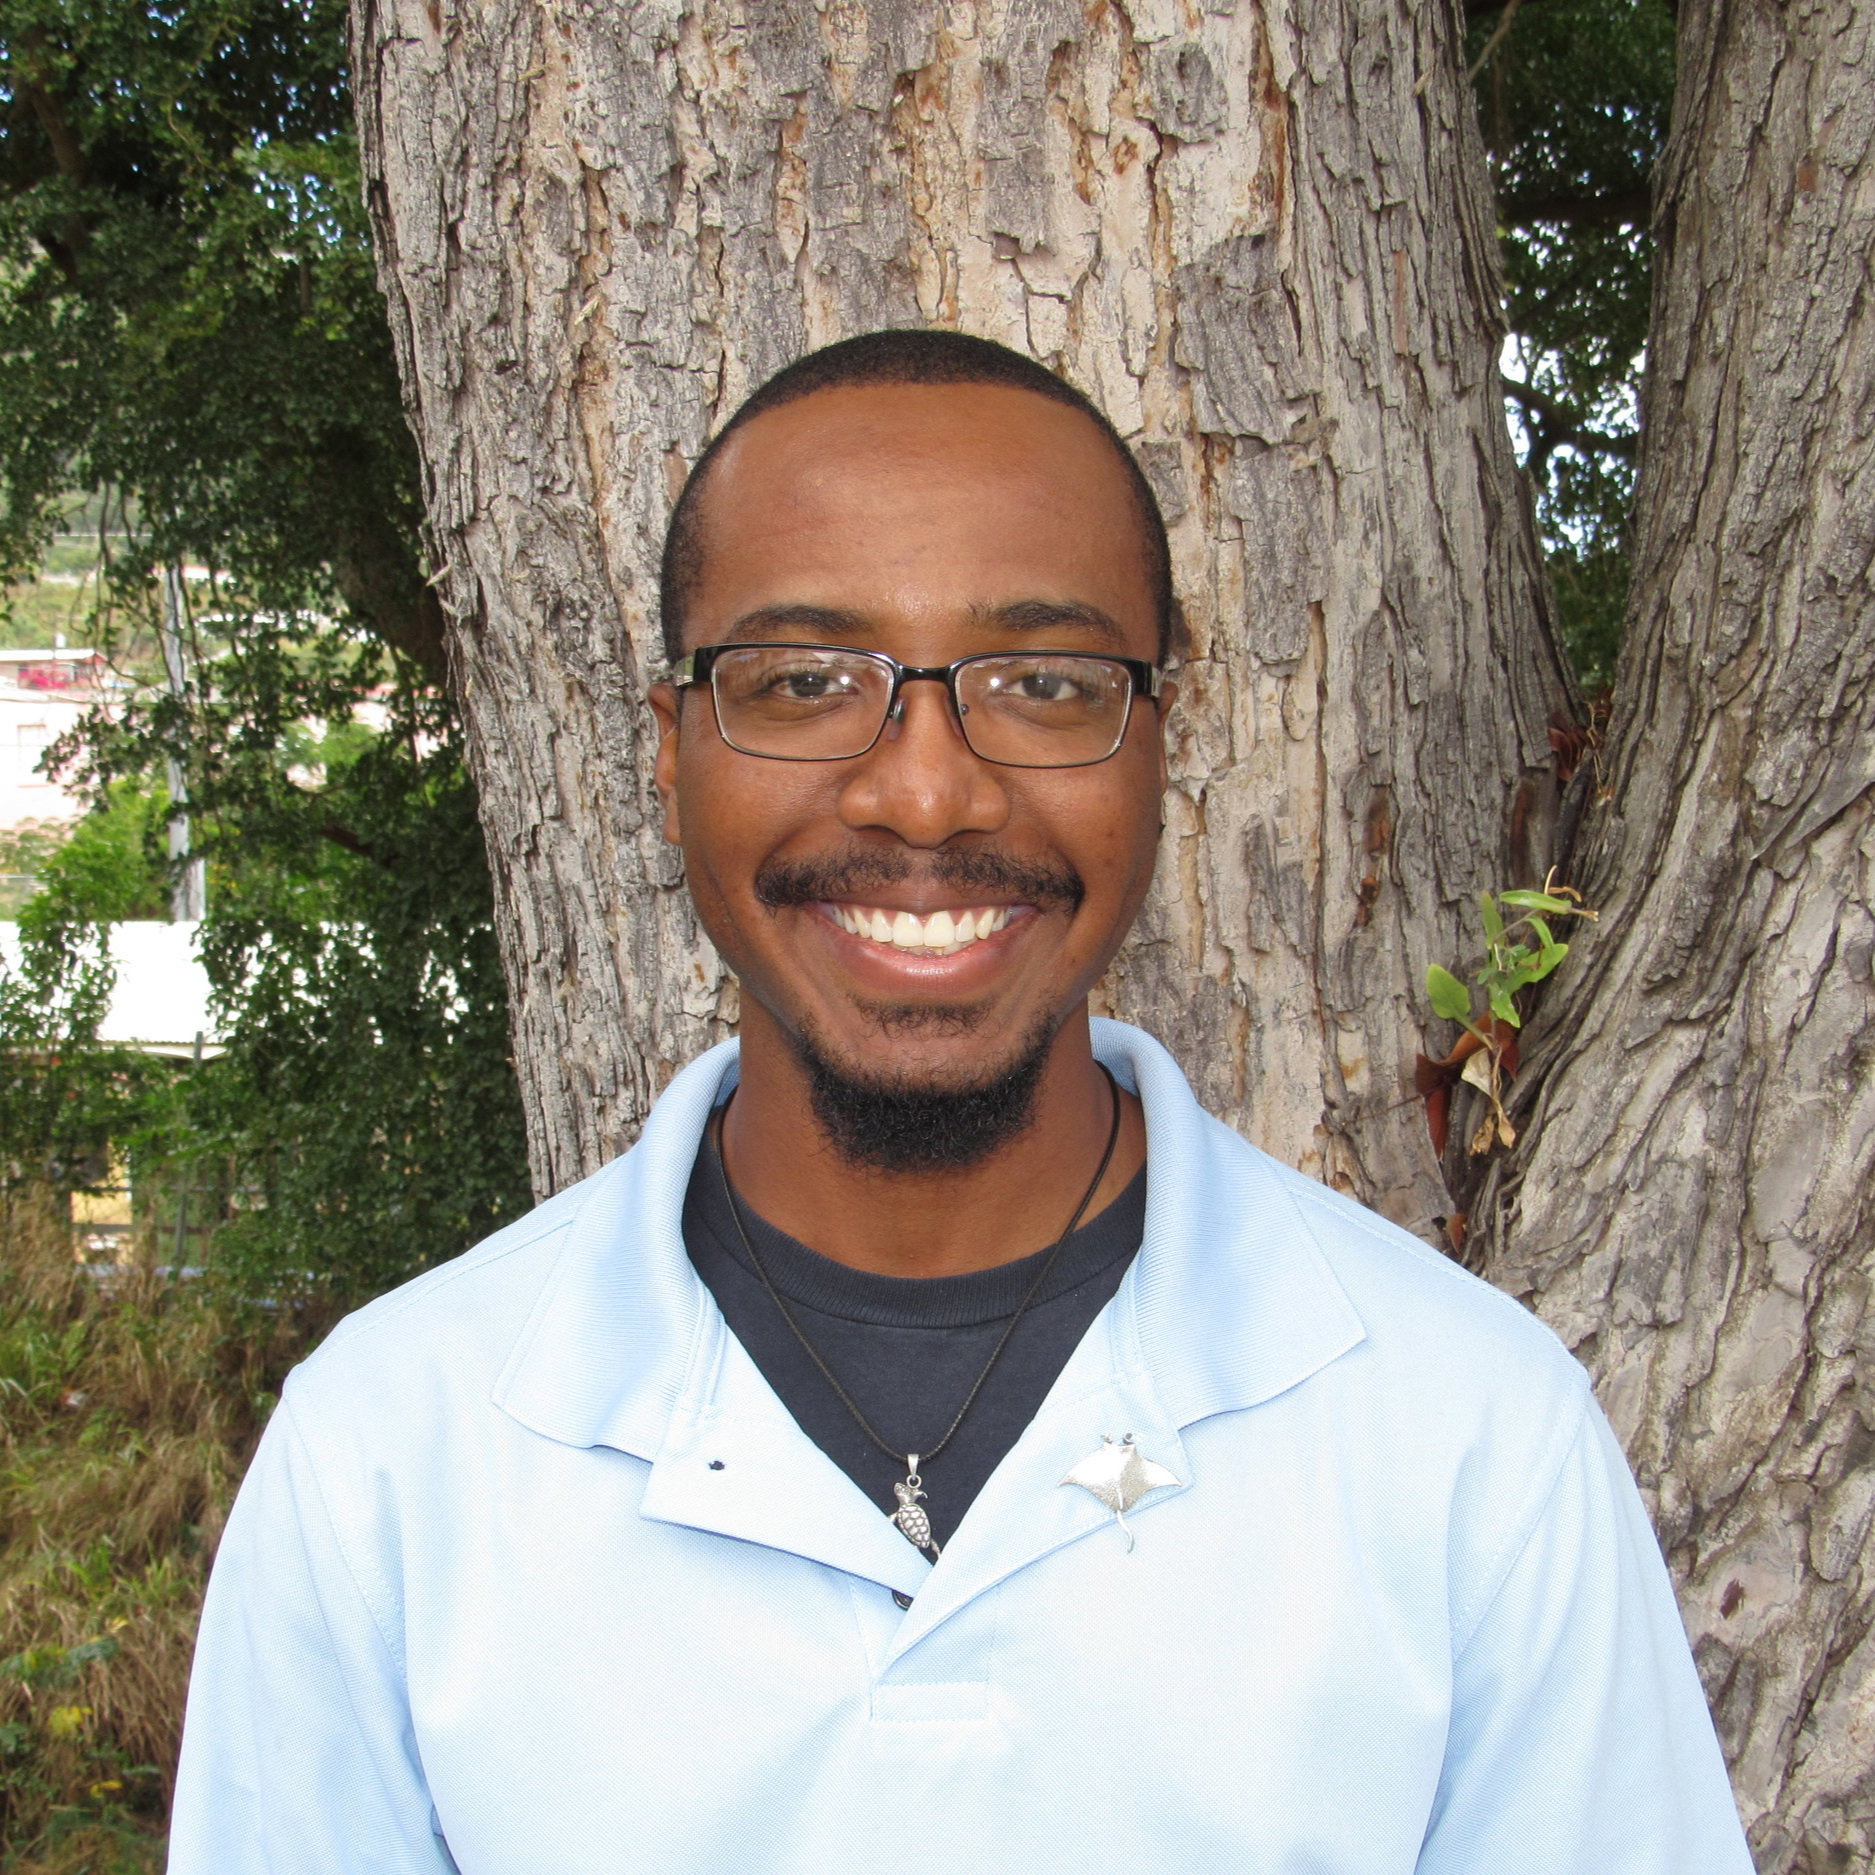 Jarvon Stout - Program FacilitatorOh hi, I almost didn't see you there. My name is Jarvon. I am a native Virgin Islander and one of the curriculum facilitators for the USVI Storm Strong Program. I have a background in marine biology and have been working as an outreach specialist for 4 years. When I am not engaging and educating underserved communities of the Virgin Islands, I'm spending my time hiking, kayaking, scuba diving, or scheduling multiple power naps for the upcoming week. Learn more about me…